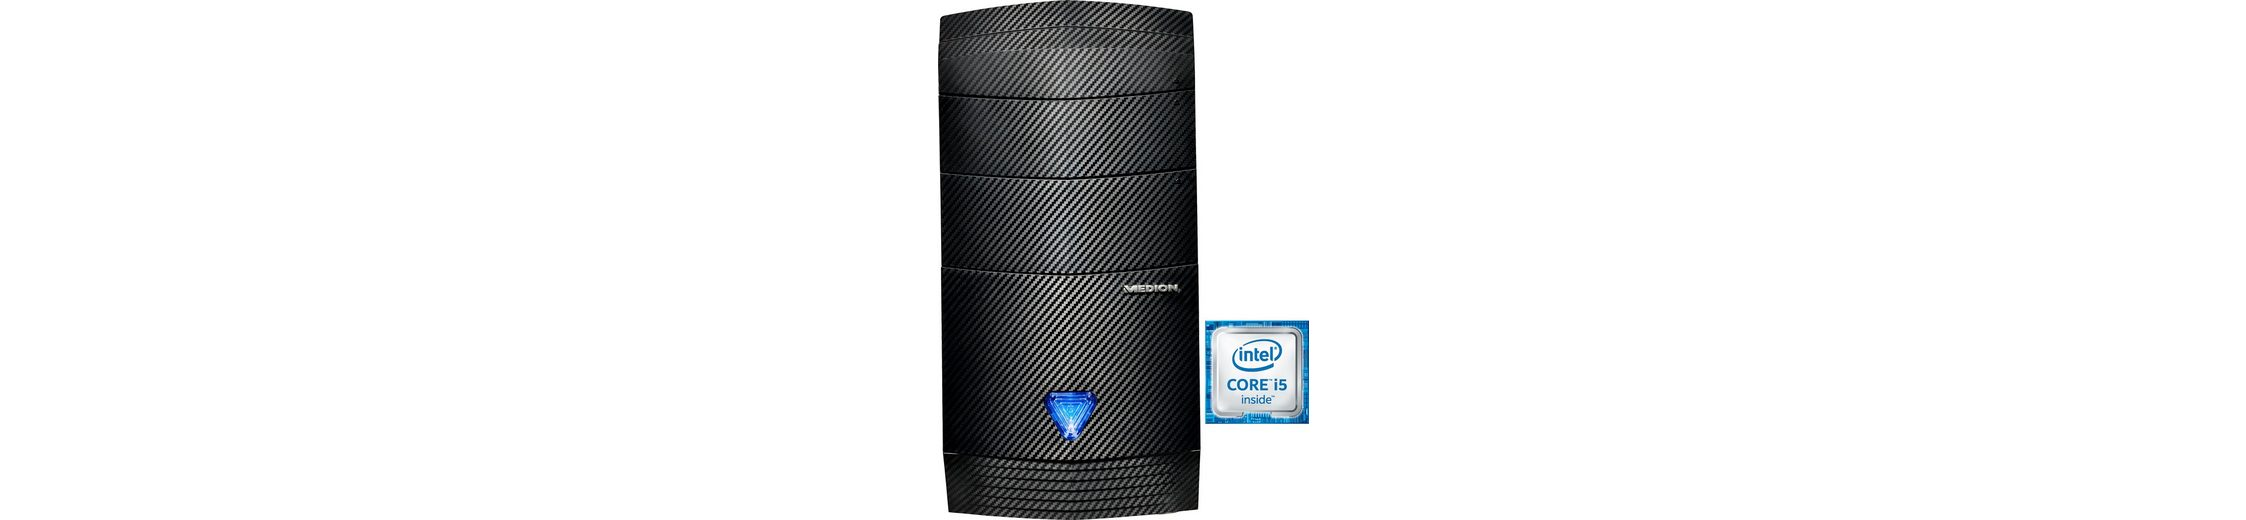 Medion® PC S91 (B783) PC, Intel® Core™ i5, 8192 MB DDR3-RAM, 3120 GB Speicher